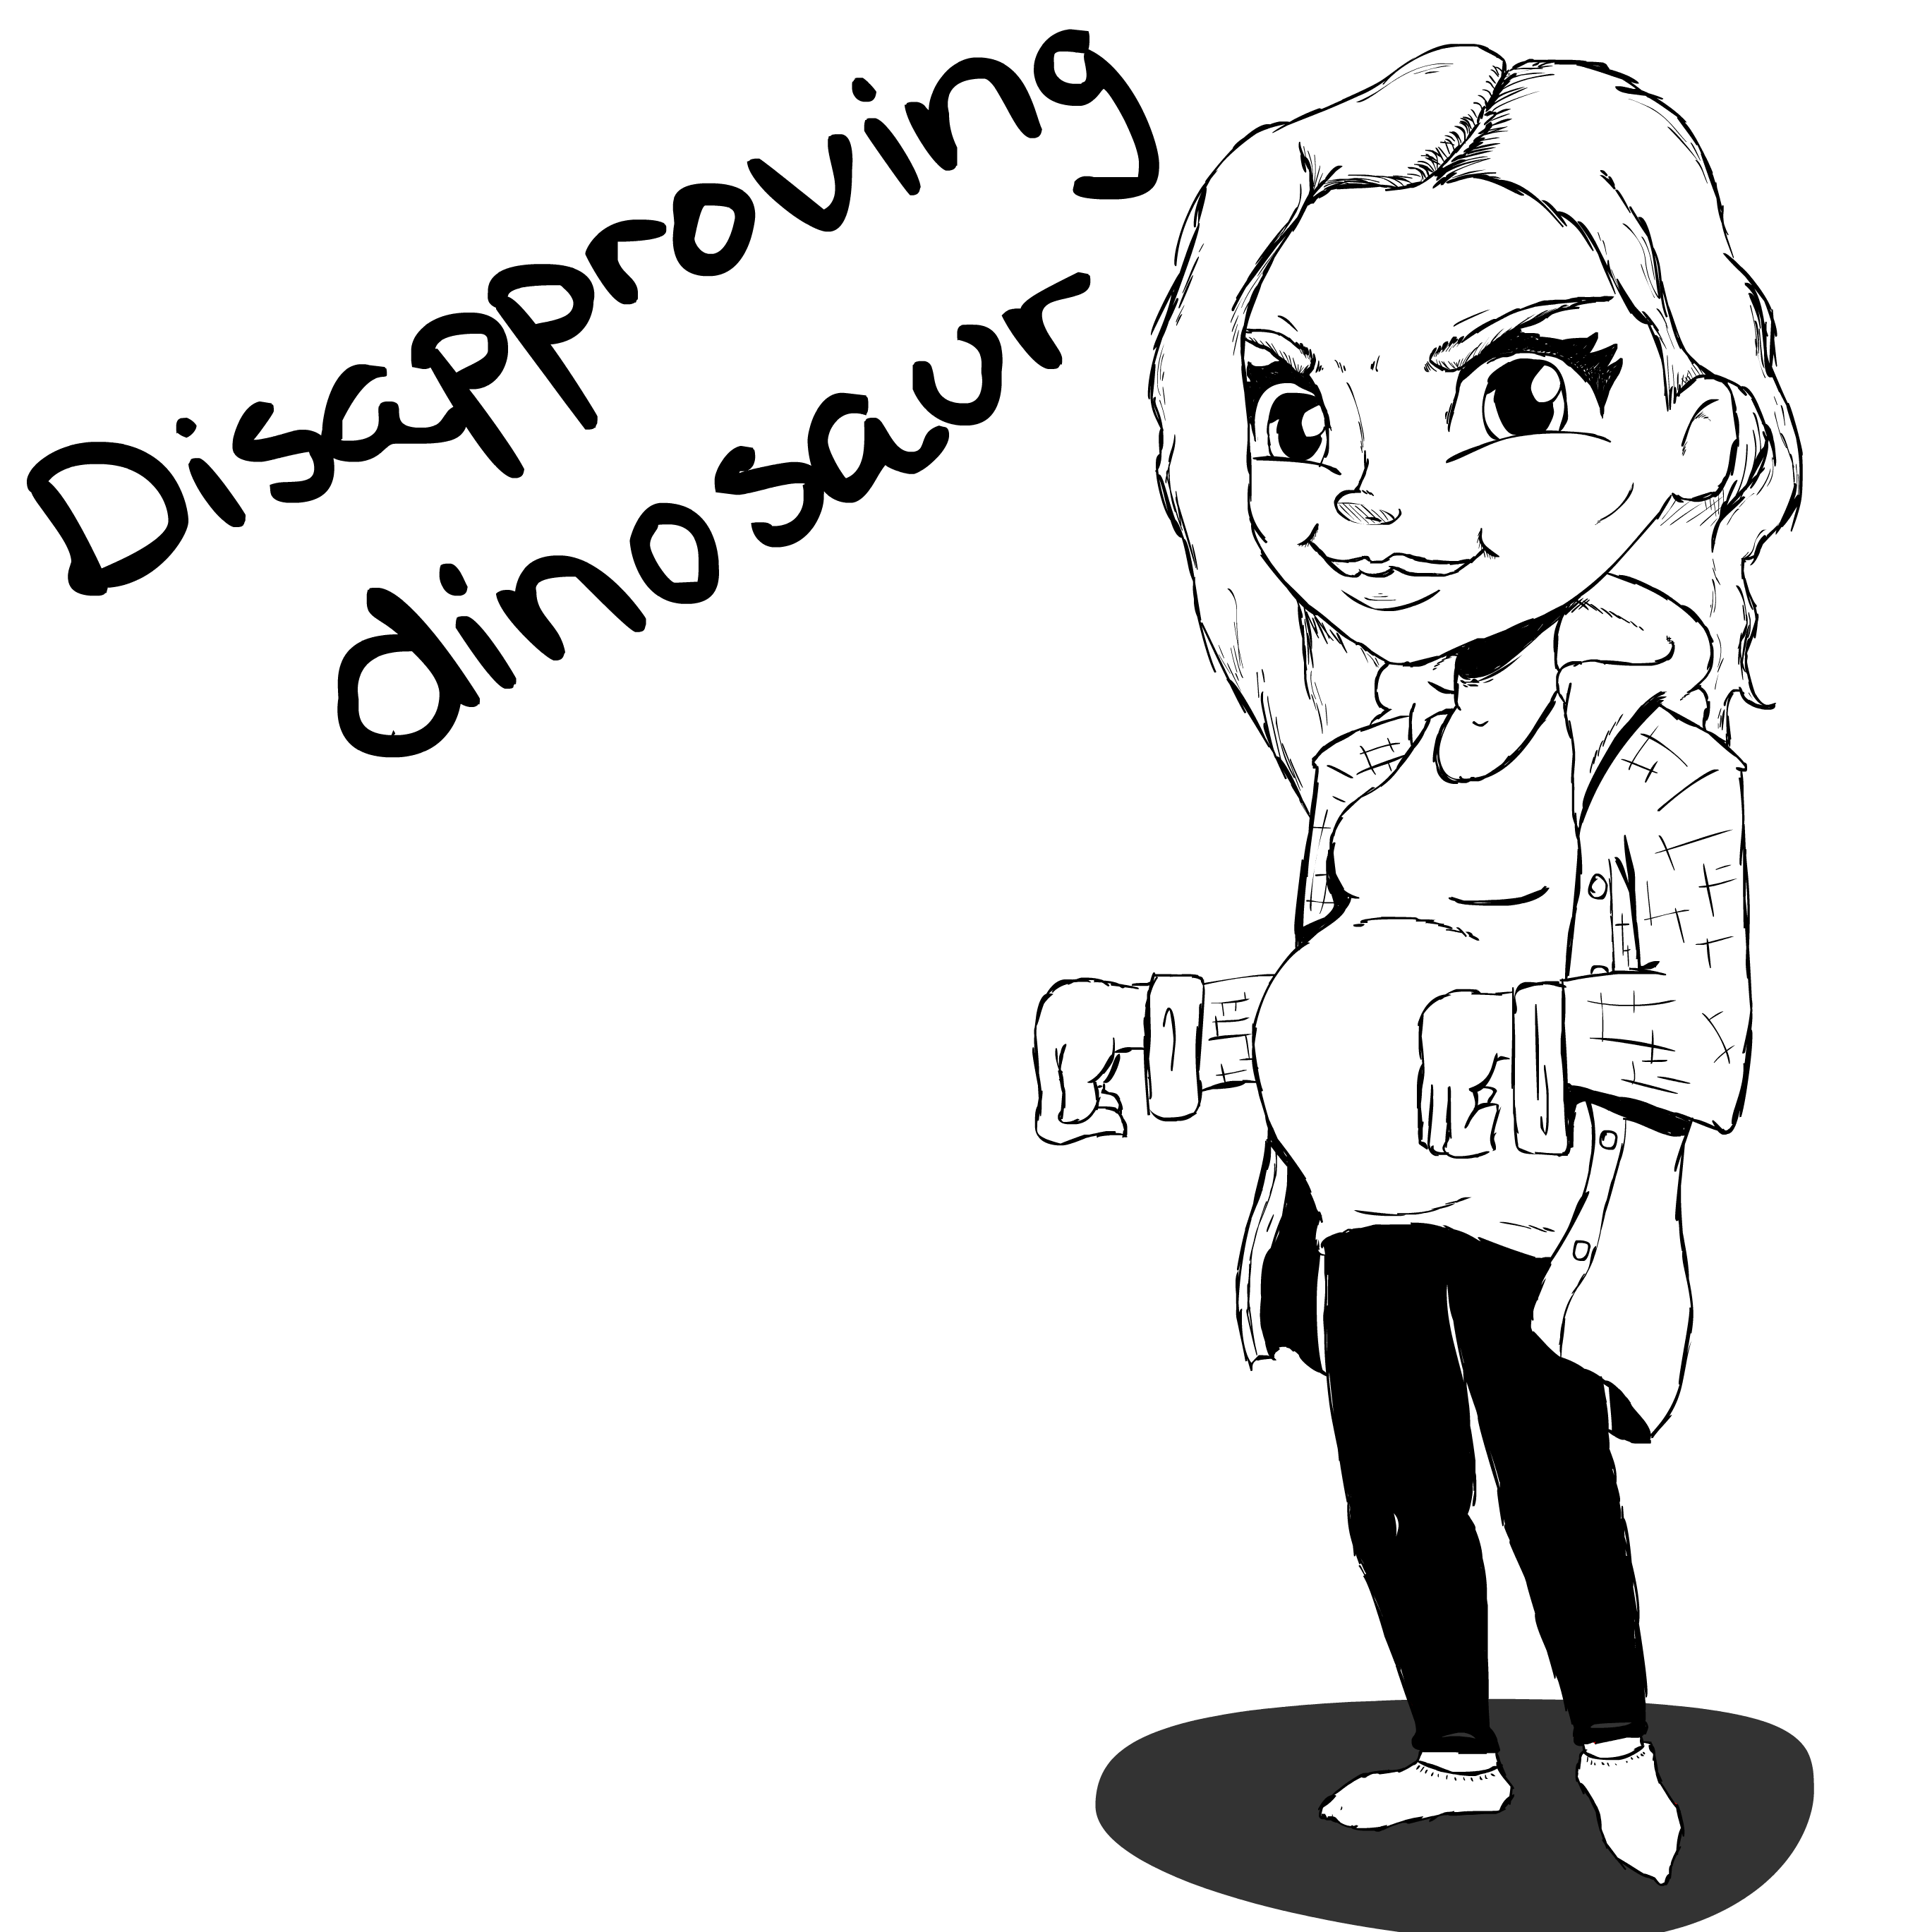 Disapproving Dinosaur